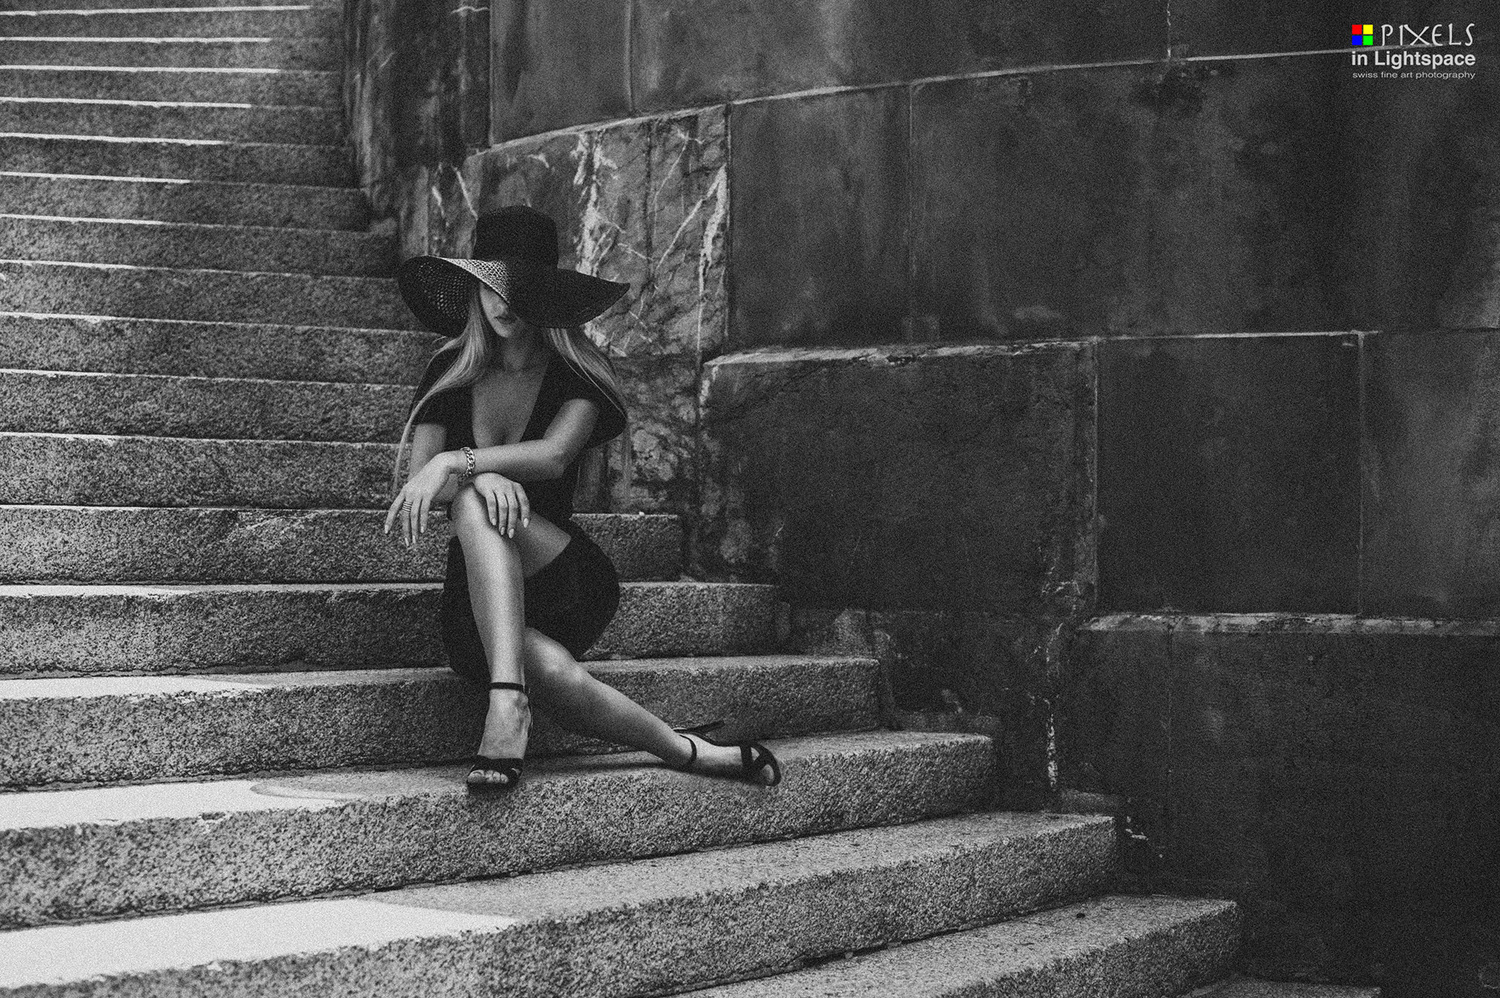 Sit down, but in the shadow by Mladen Dakic